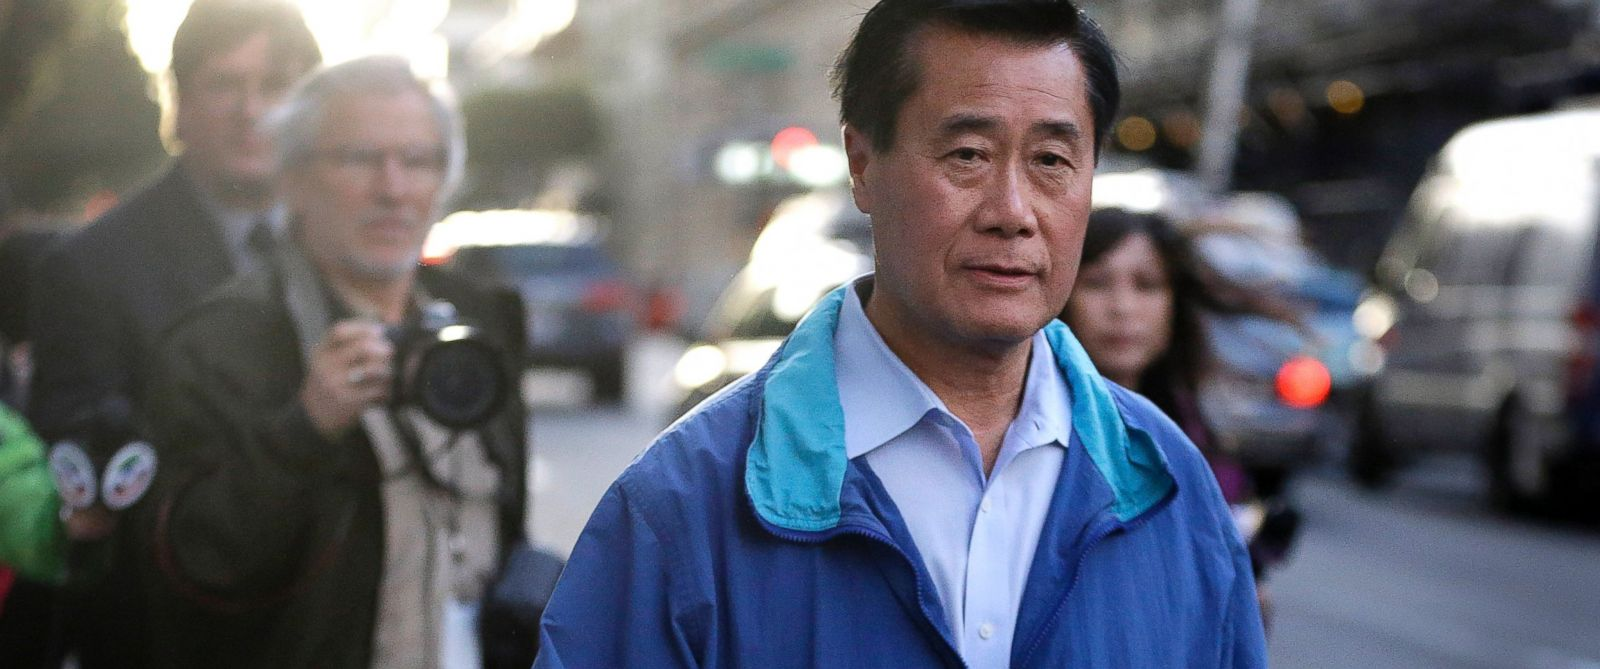 PHOTO: California Sen. Leland Yee, D-San Francisco, leaves the San Francisco Federal Building, March 26, 2014, in San Francisco.